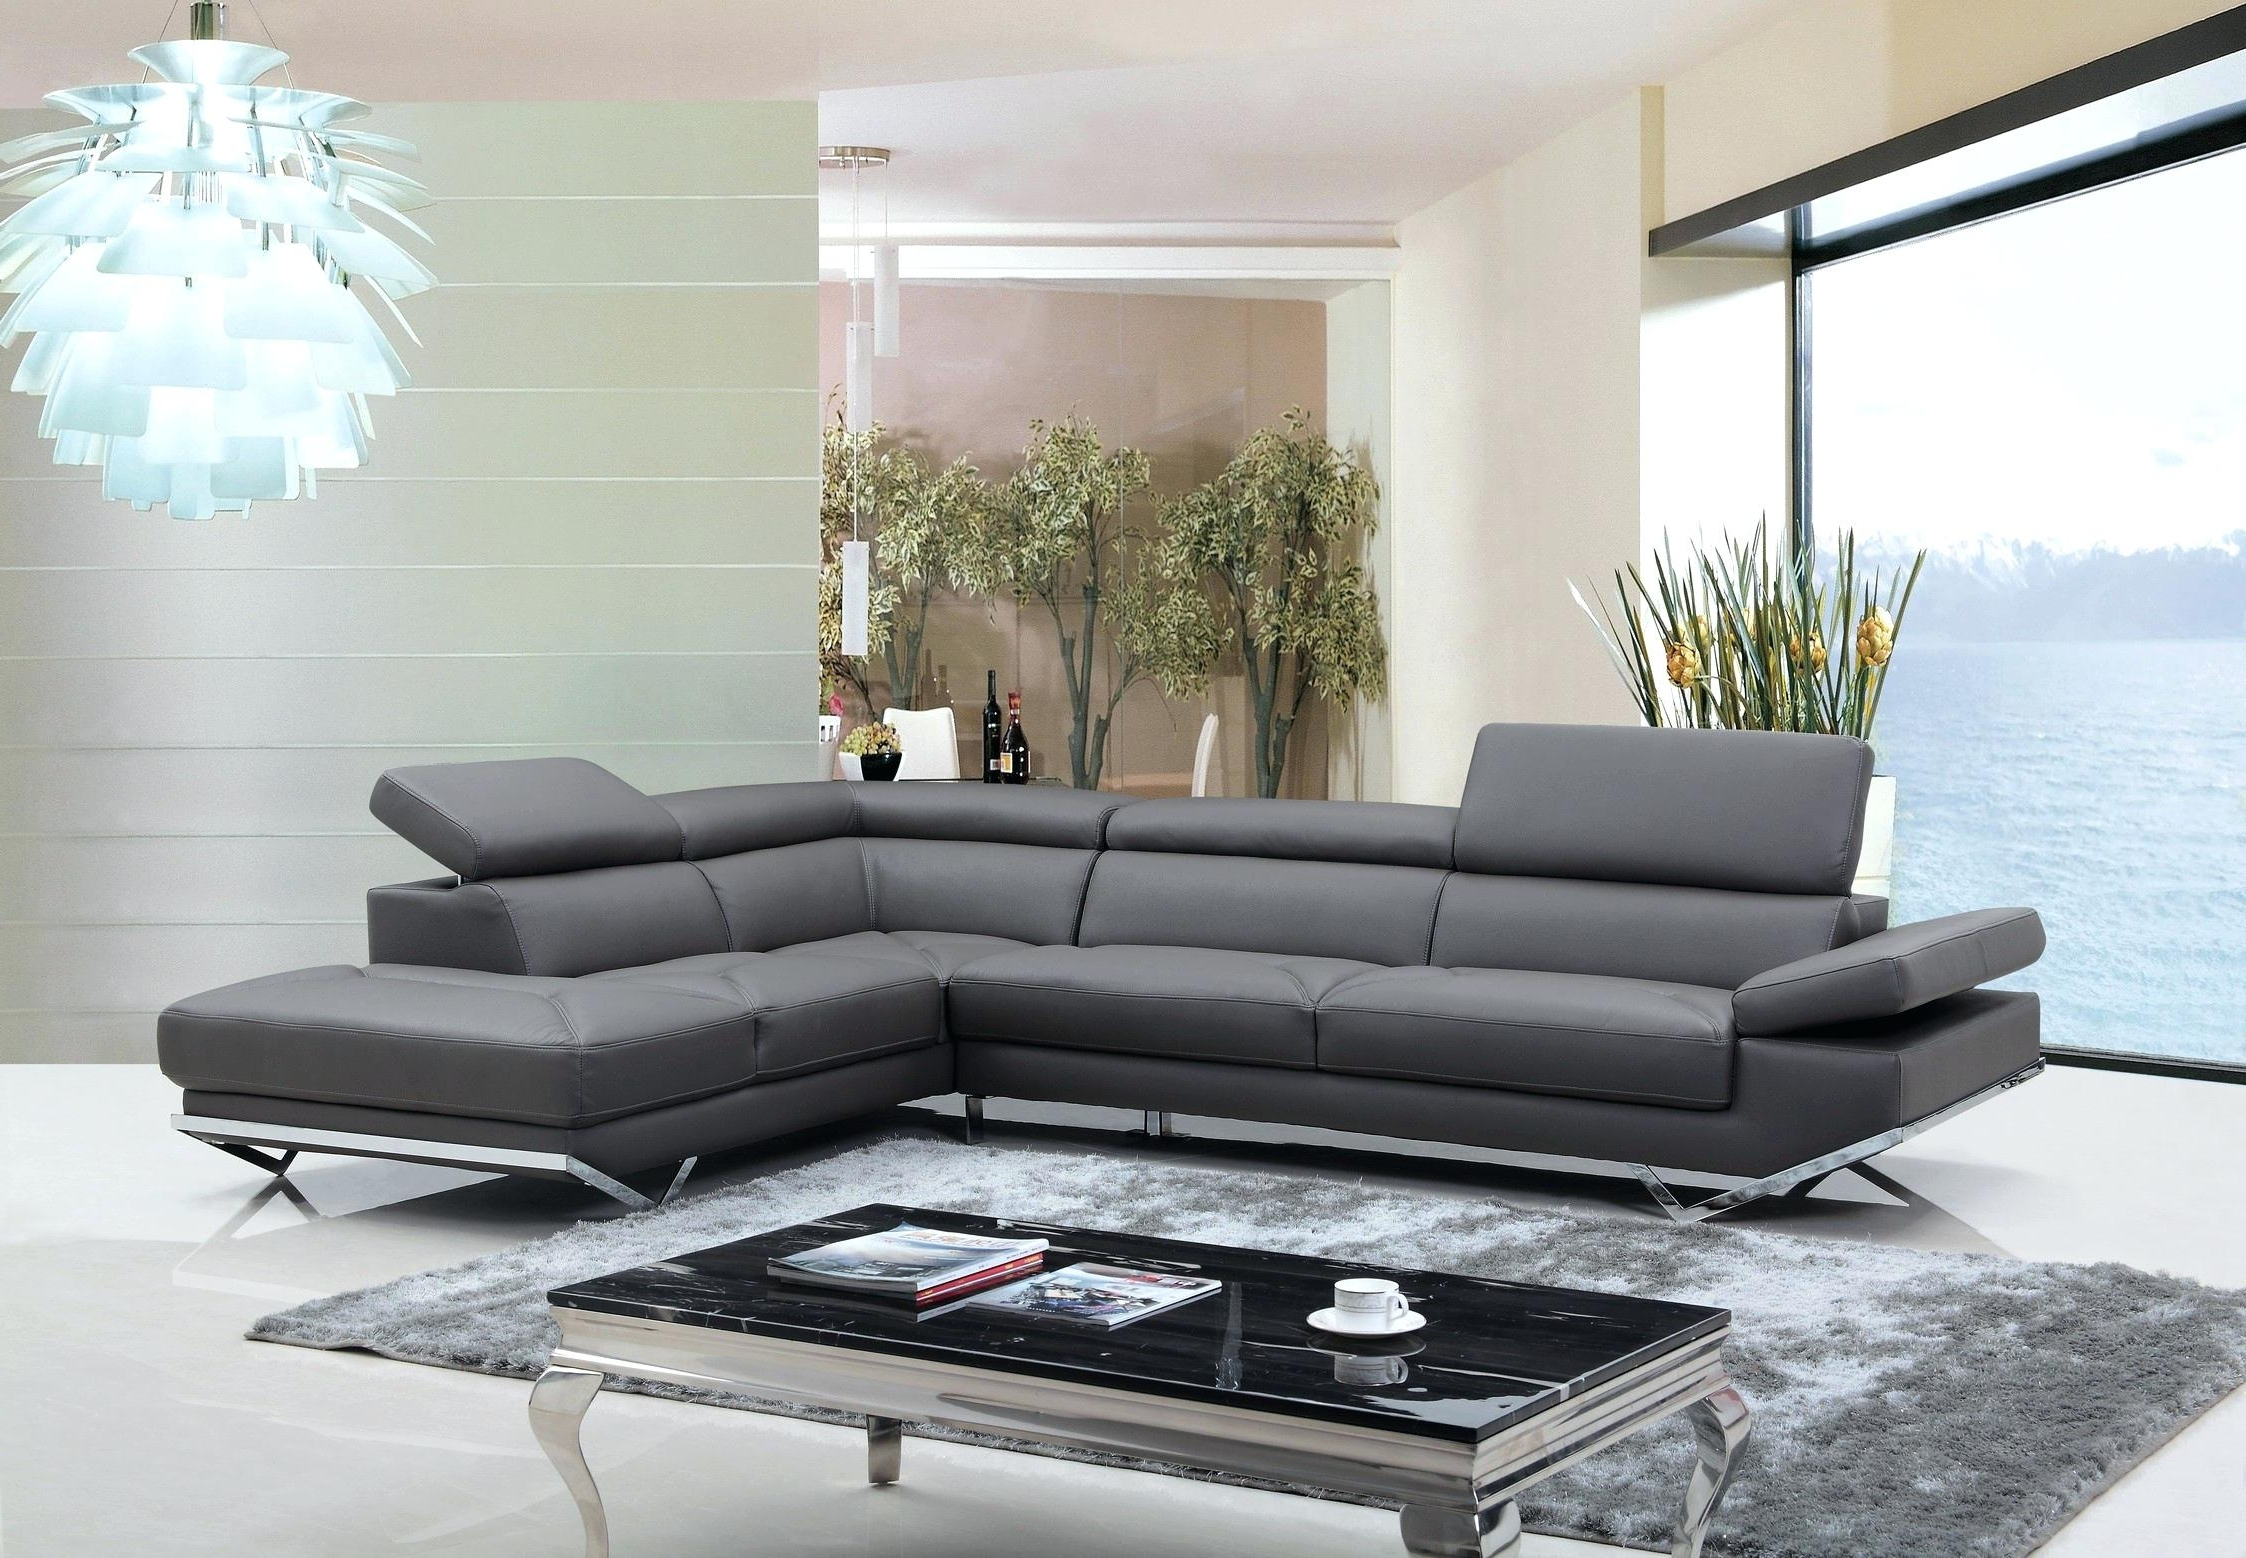 Grey Sectional Sofa Under 1000 Gray Costco Sectionals For Sale For Favorite Leons Sectional Sofas (View 3 of 15)